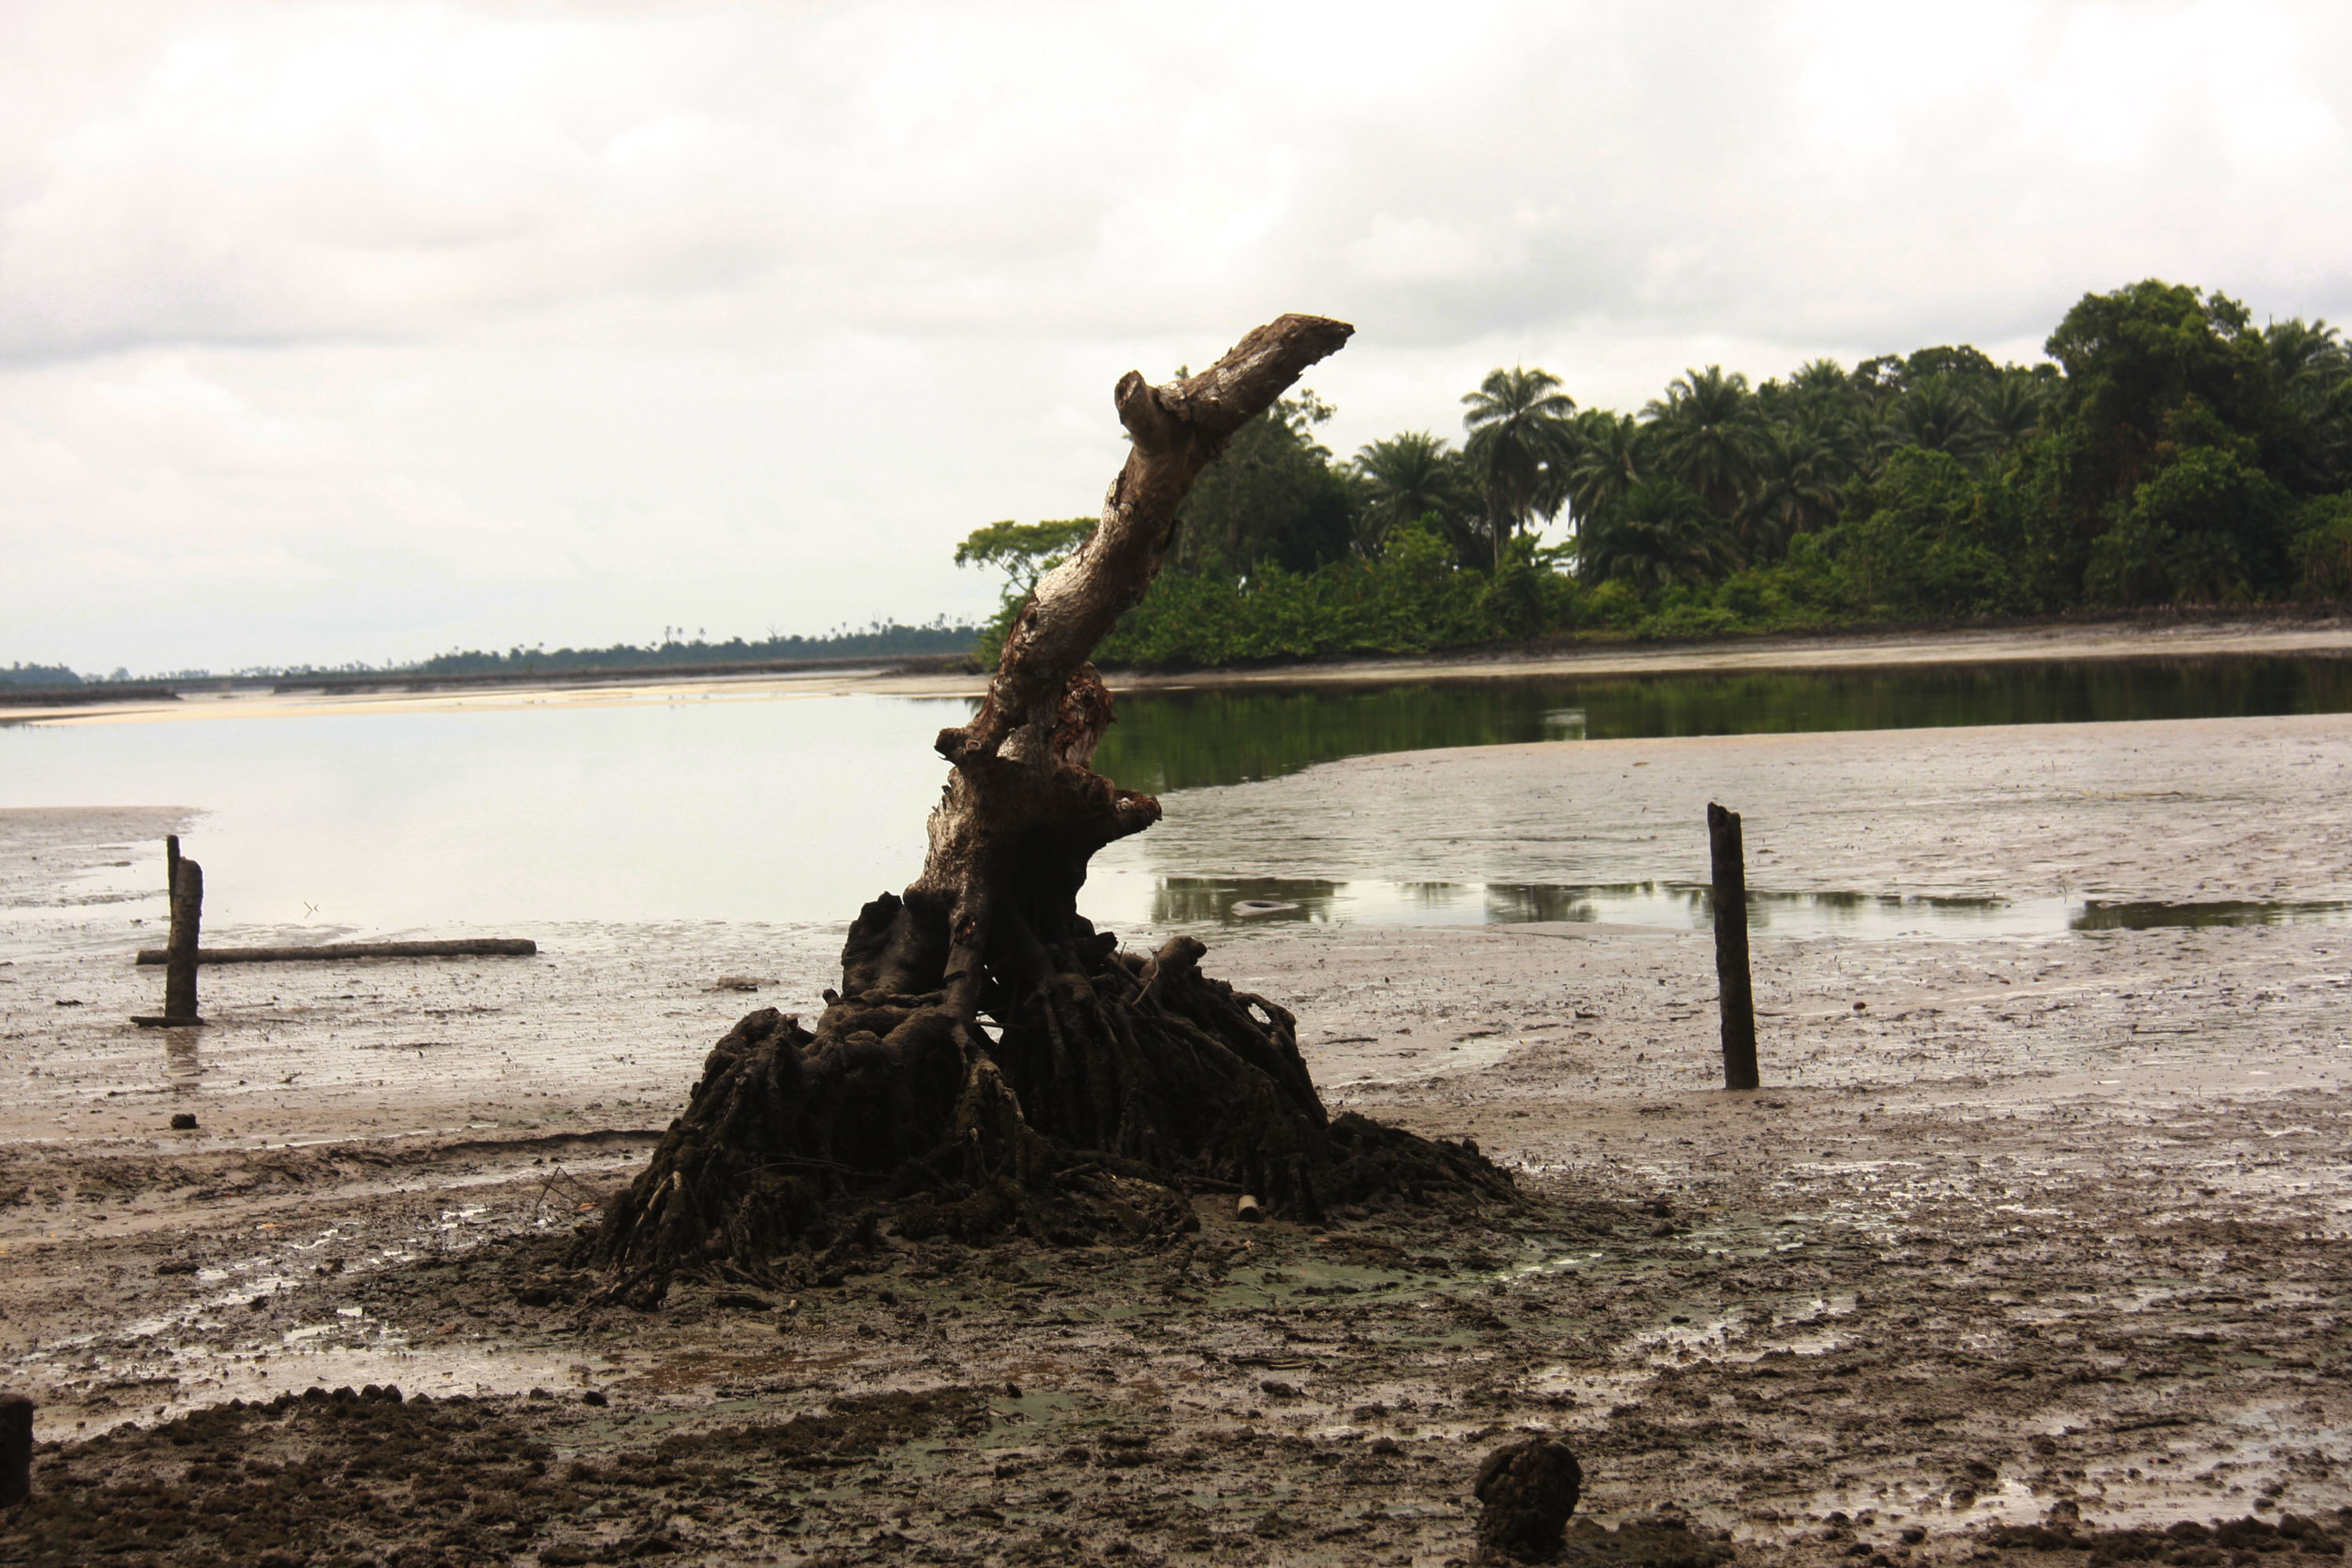 Effect of the Oil spills on the peoples plants